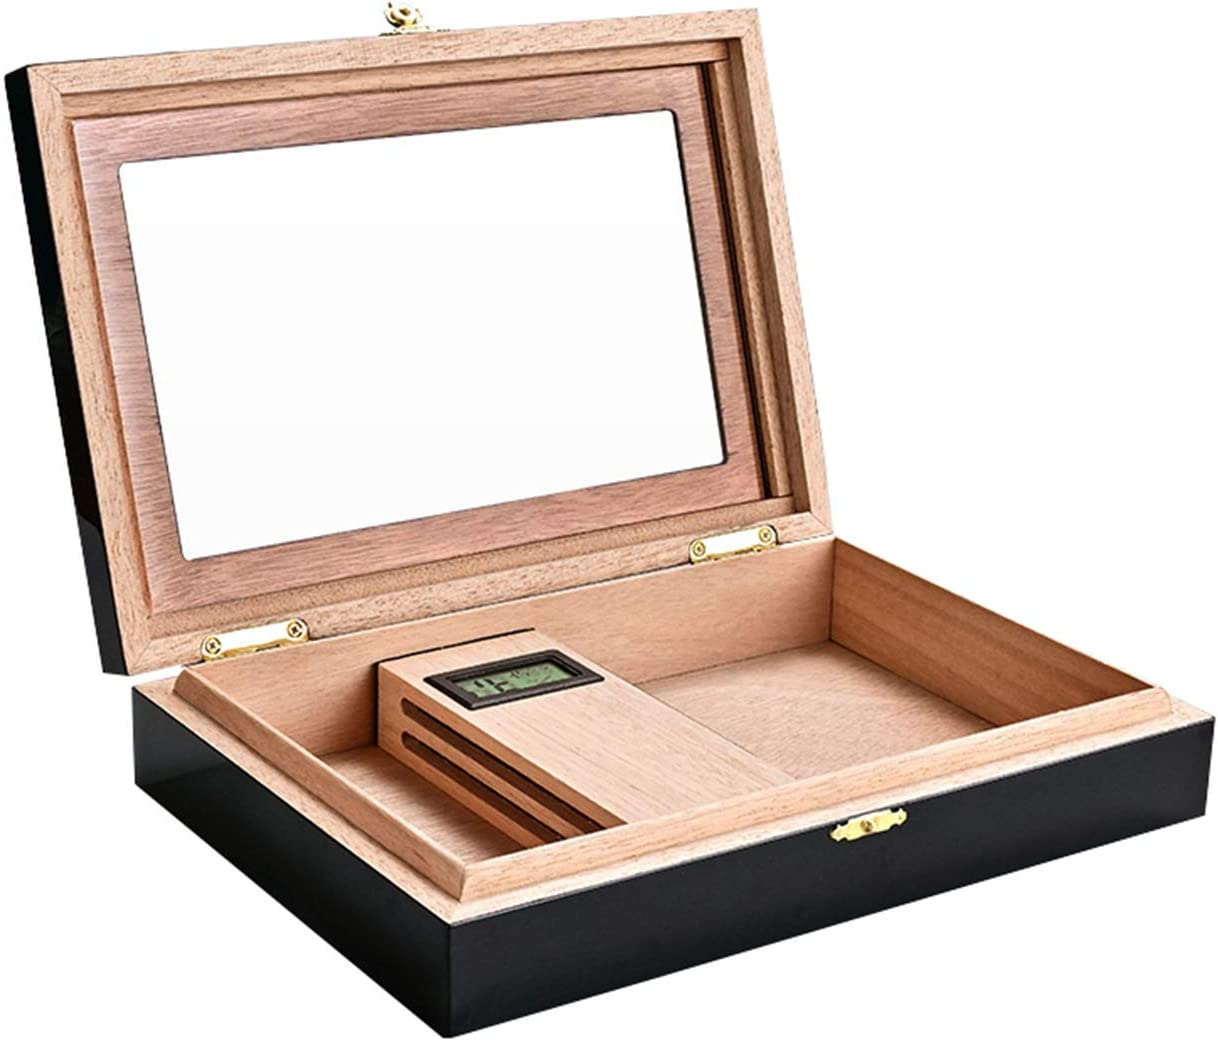 Cigar Humidor Wood Box with Hygrometer Desktop 5 ☆ Free shipping / New very popular and